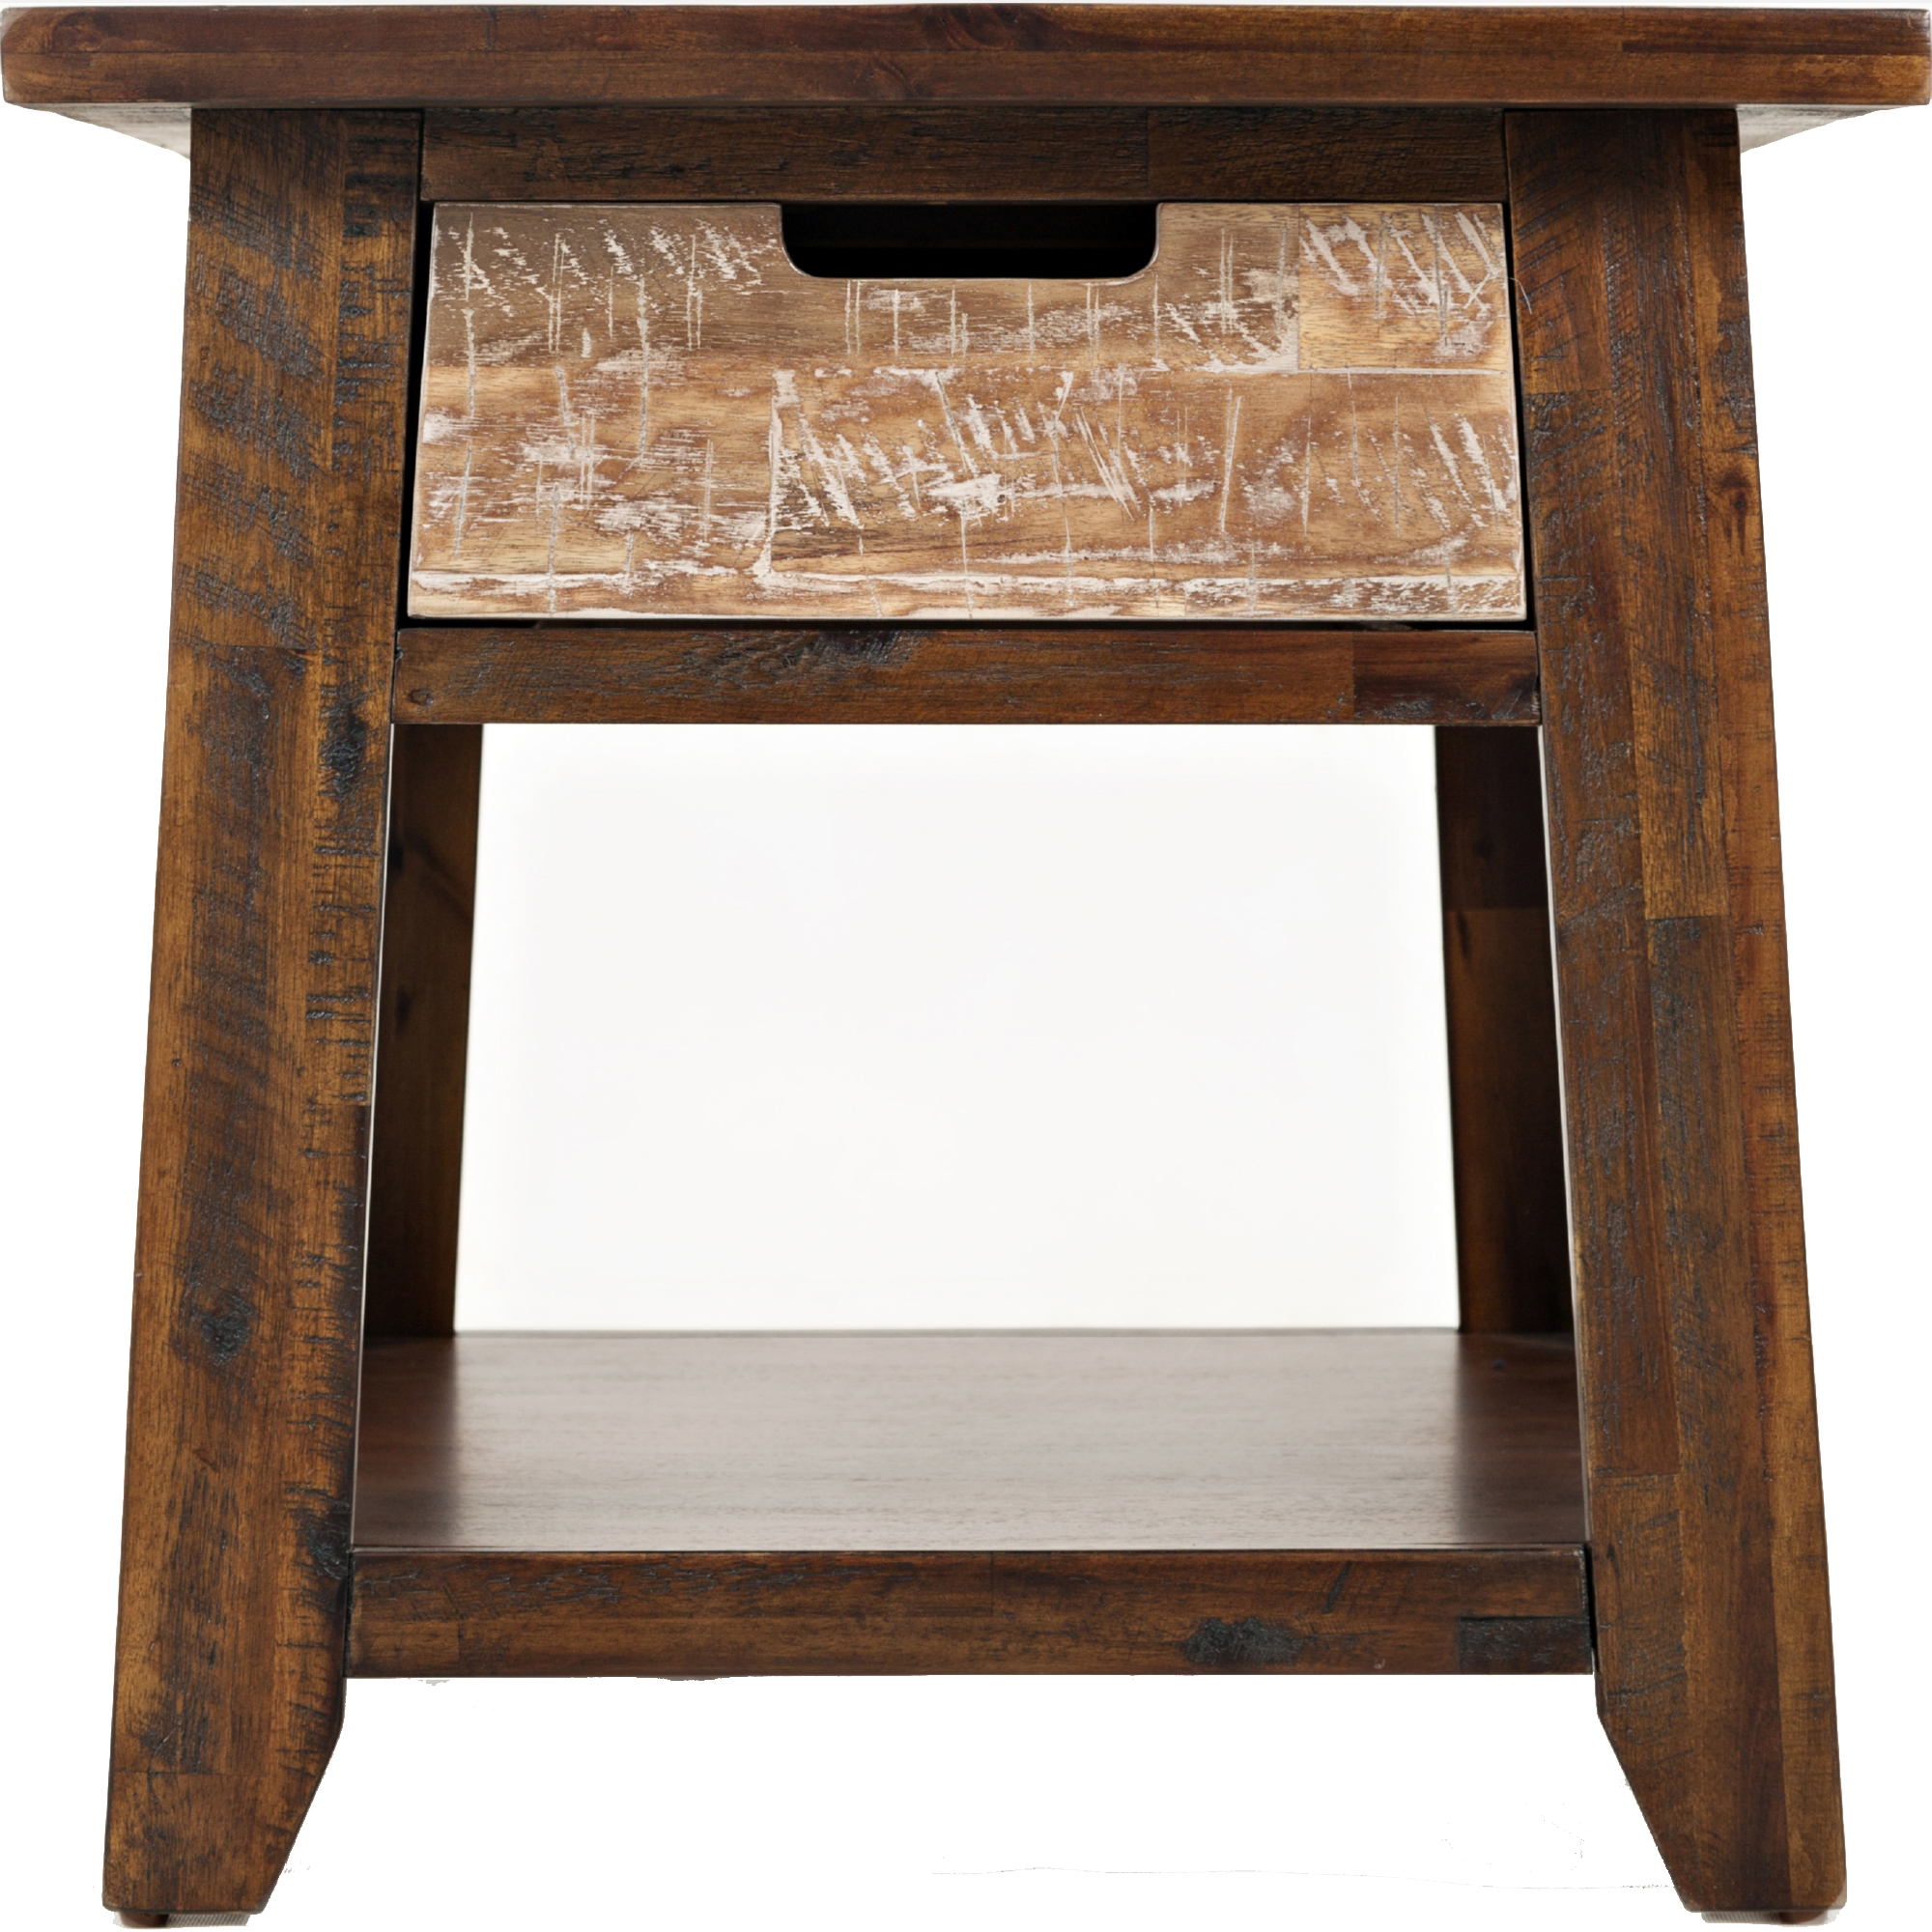 Painted Canyon End Table W/ Drawer U0026 Shelf In Distressed Acacia